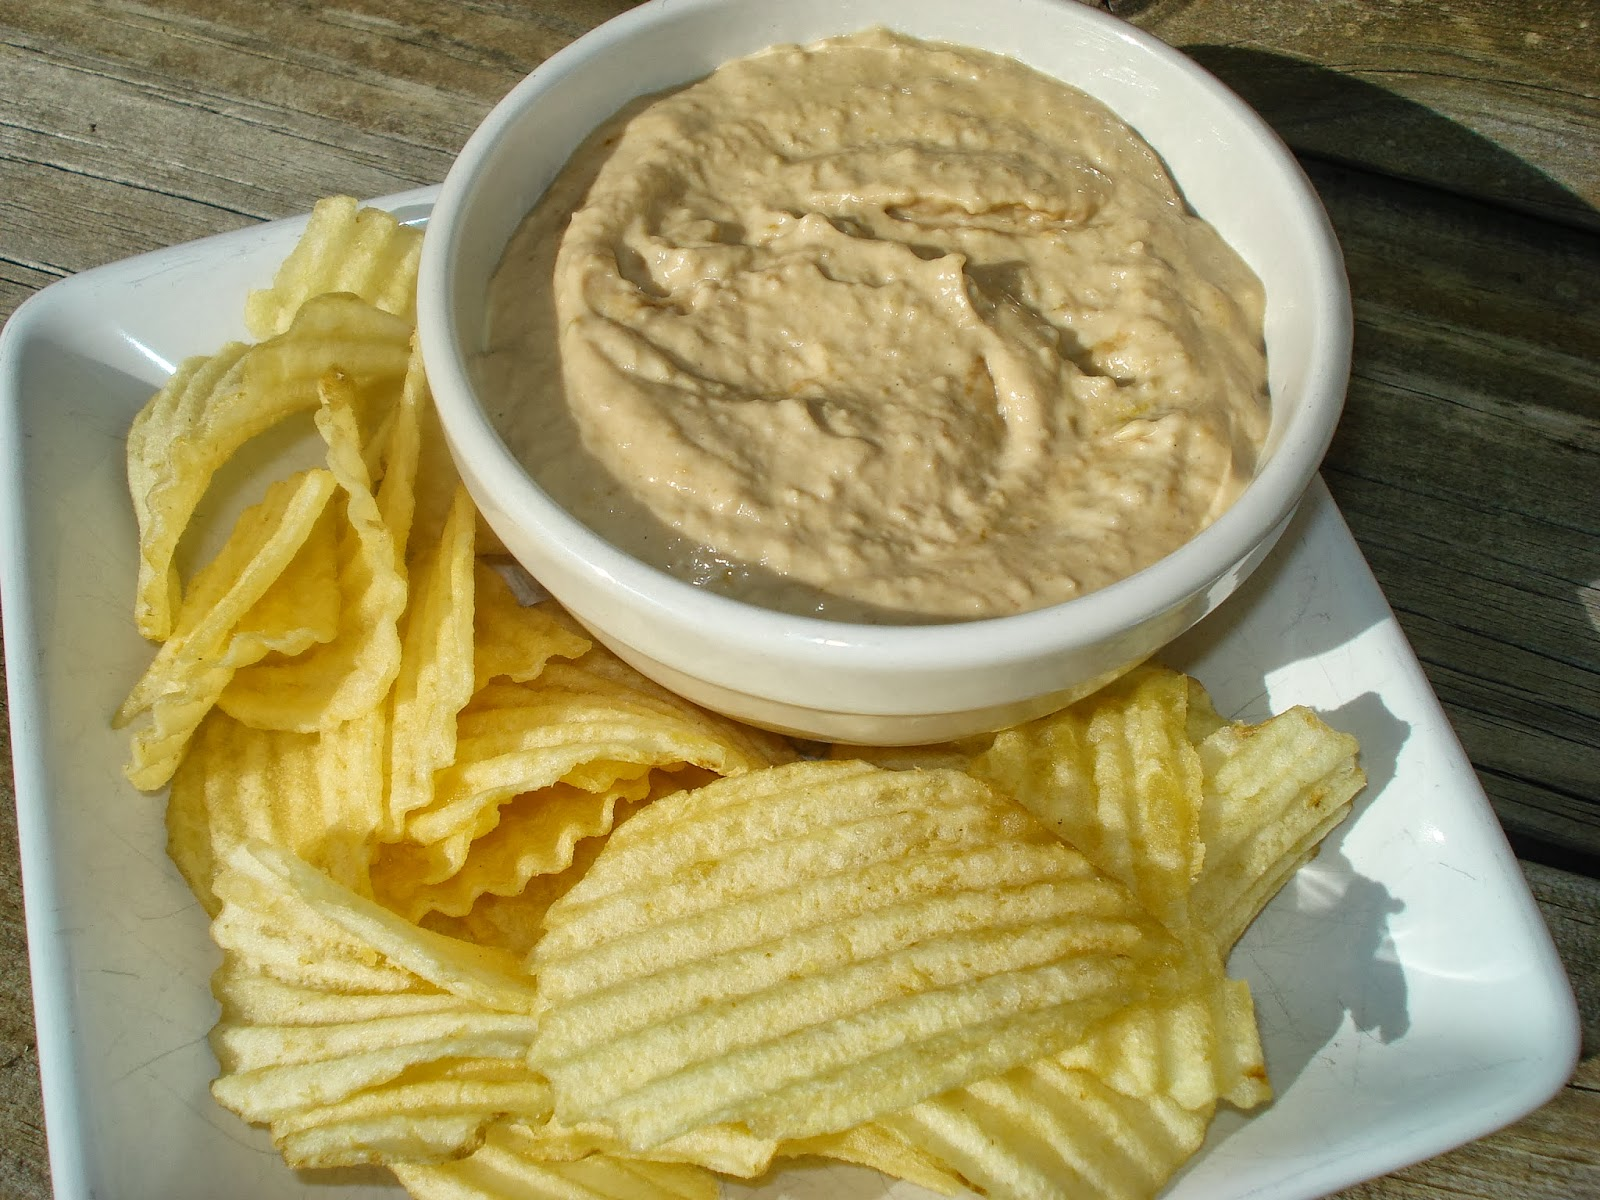 used to love eating wavy potato chips and onion dip